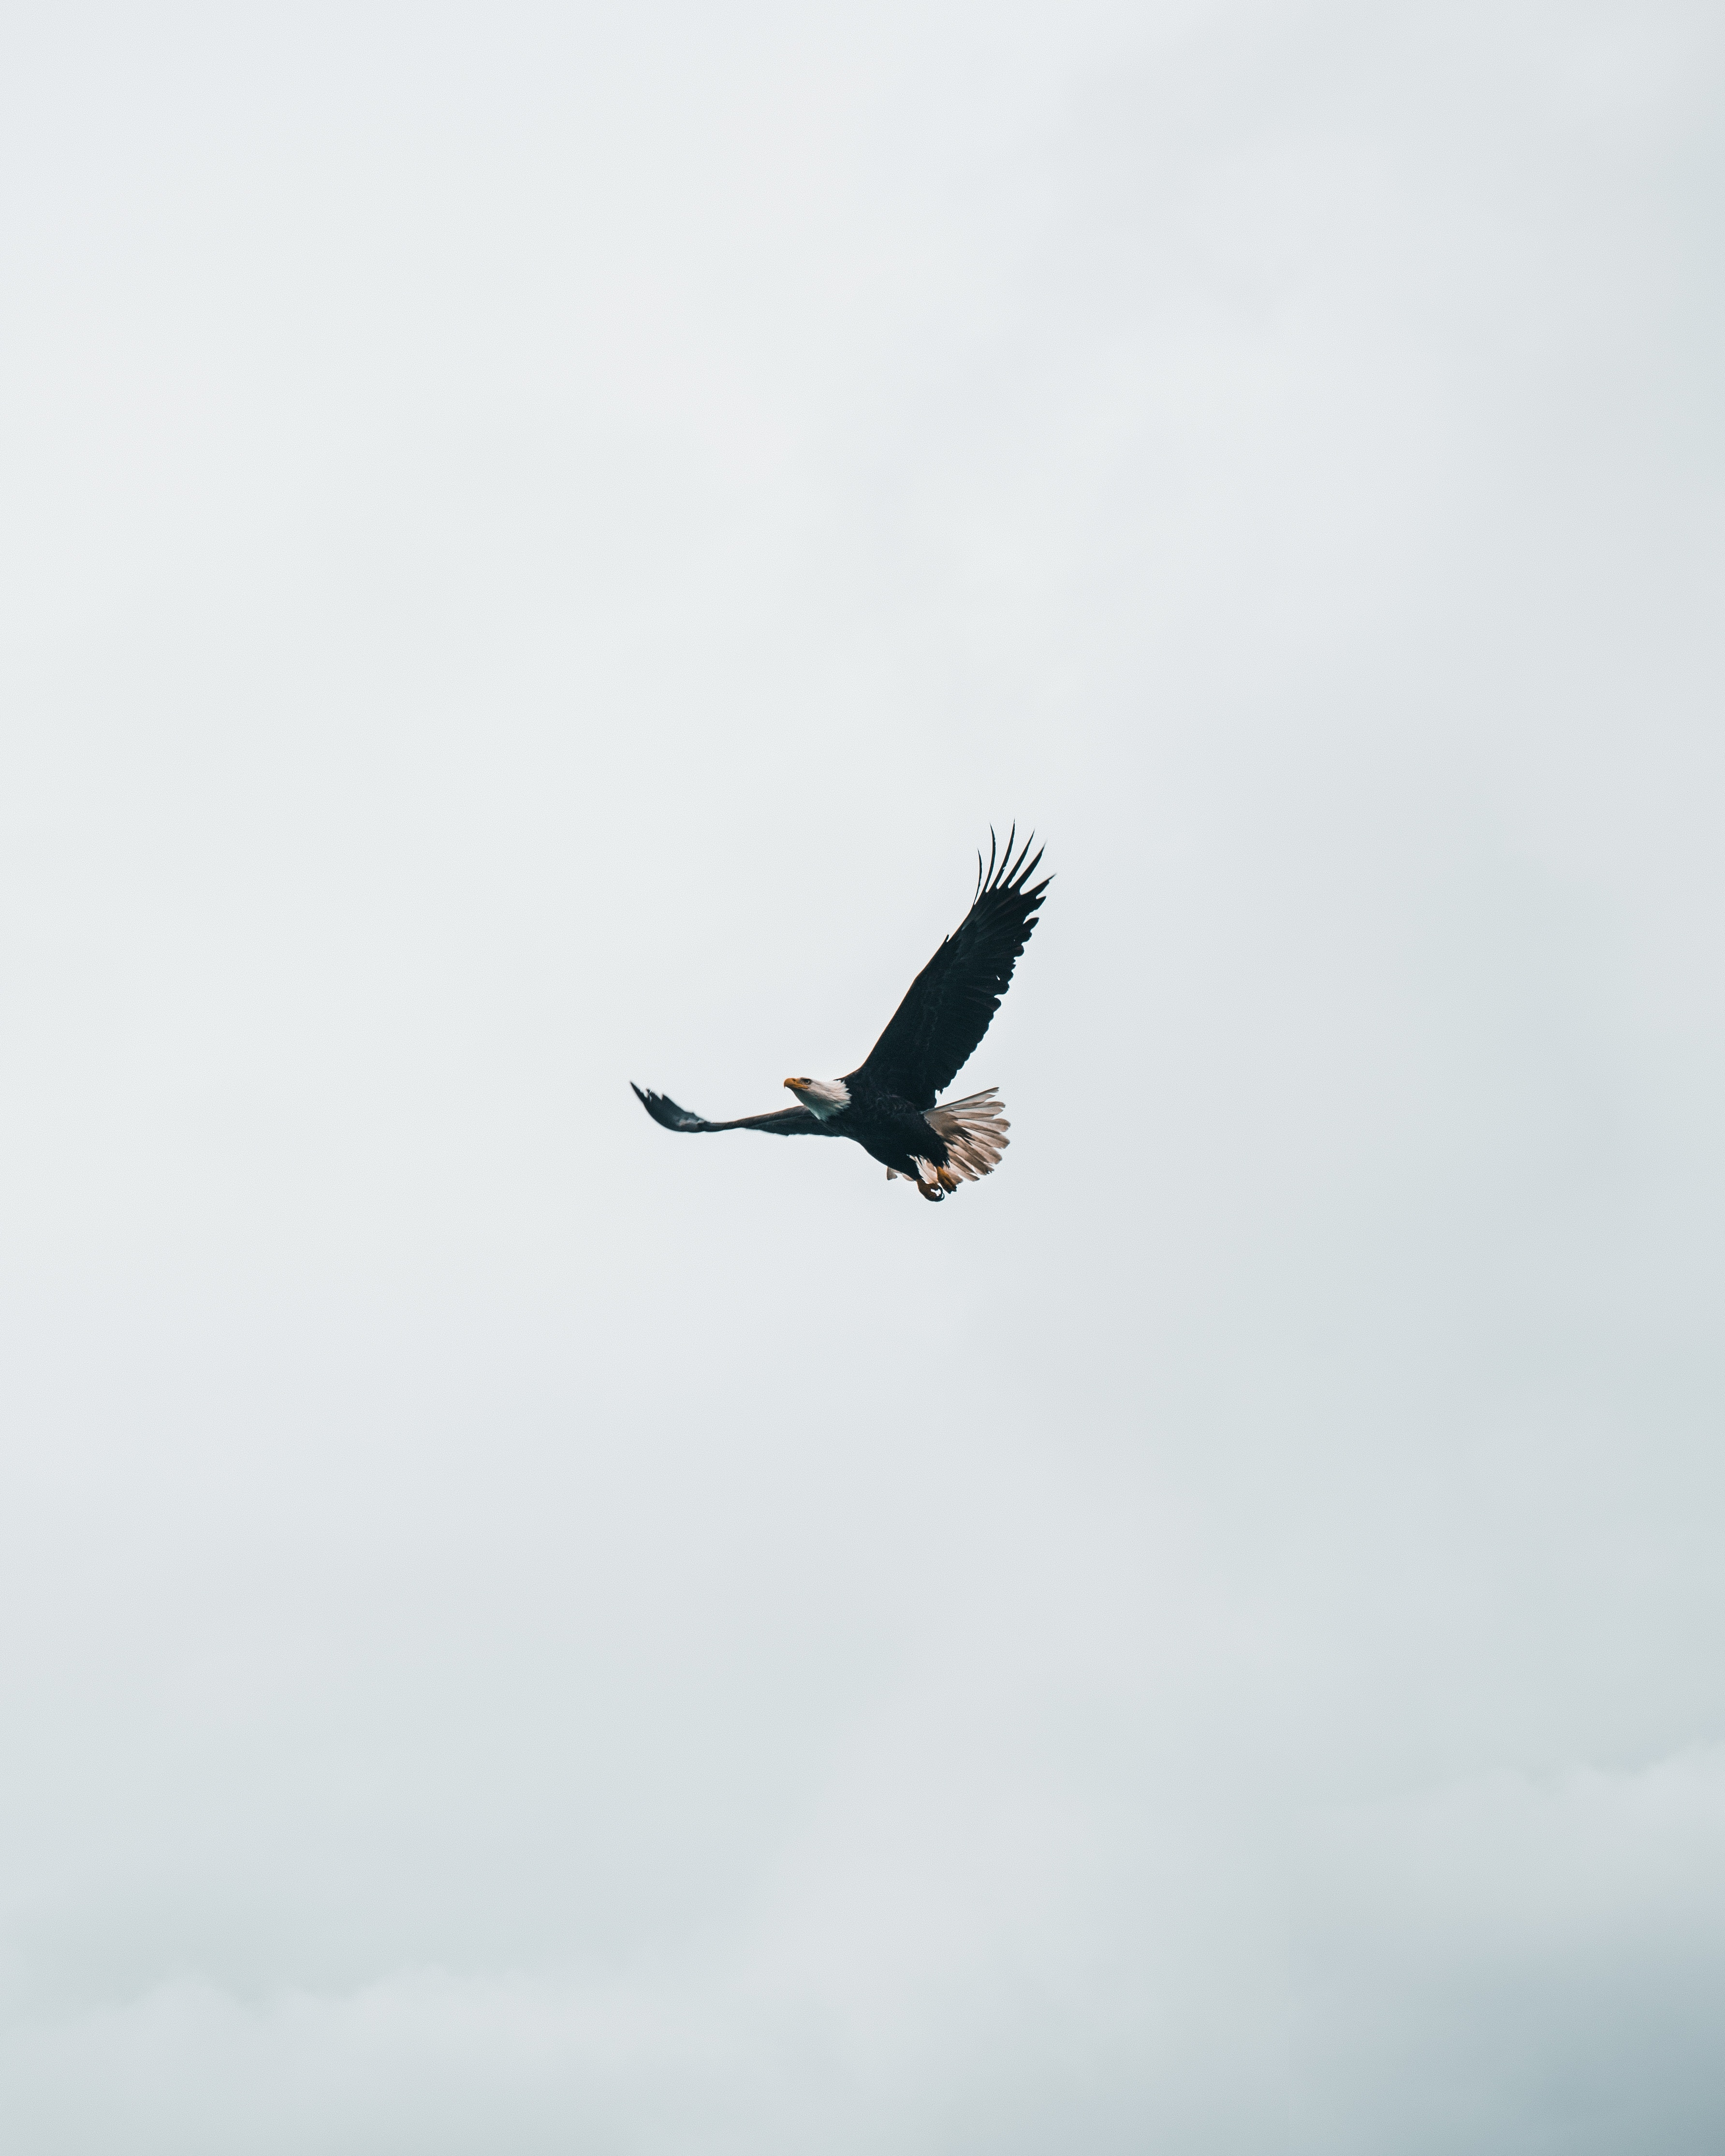 70794 download wallpaper Animals, Bald Eagle, White-Headed Eagle, Eagle, Flight, Sky, Minimalism screensavers and pictures for free